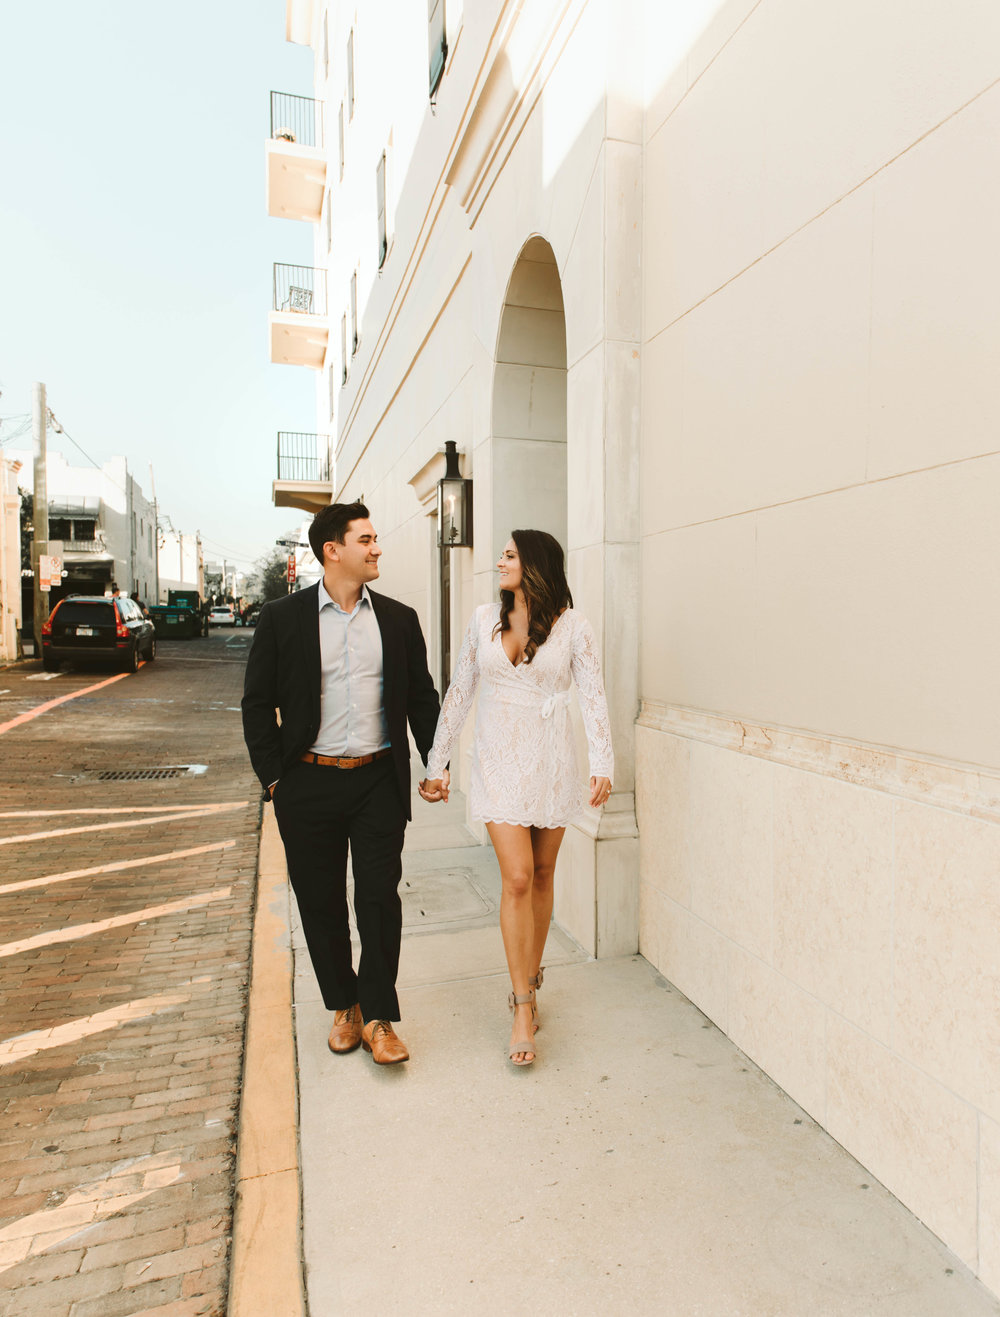 Engagement Session | David and Angela | Vanessa Boy | vanessaboy.com-155.jpg